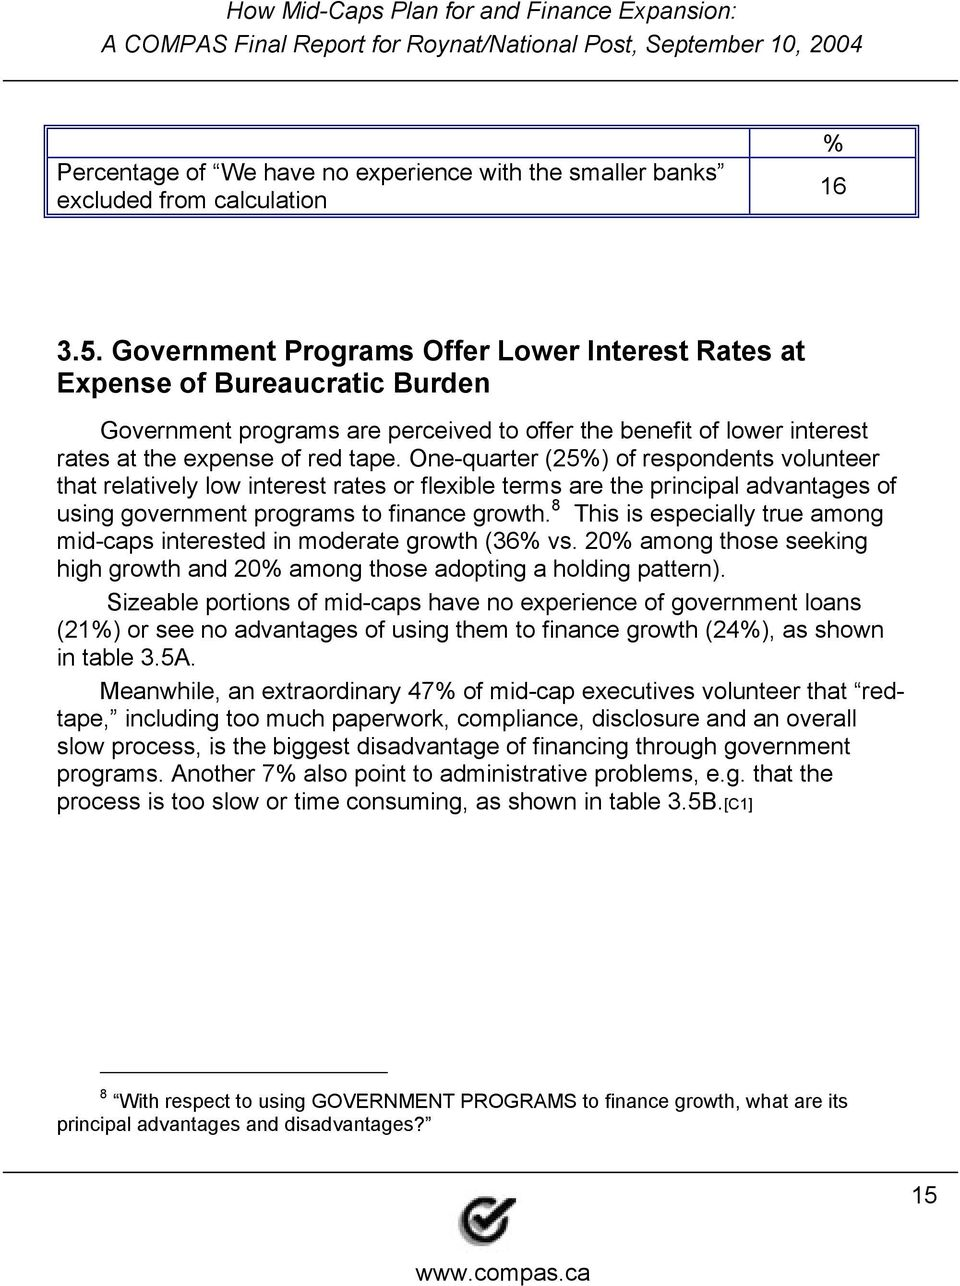 One-quarter (25) of respondents volunteer that relatively low interest rates or flexible terms are the principal advantages of using government programs to finance growth.